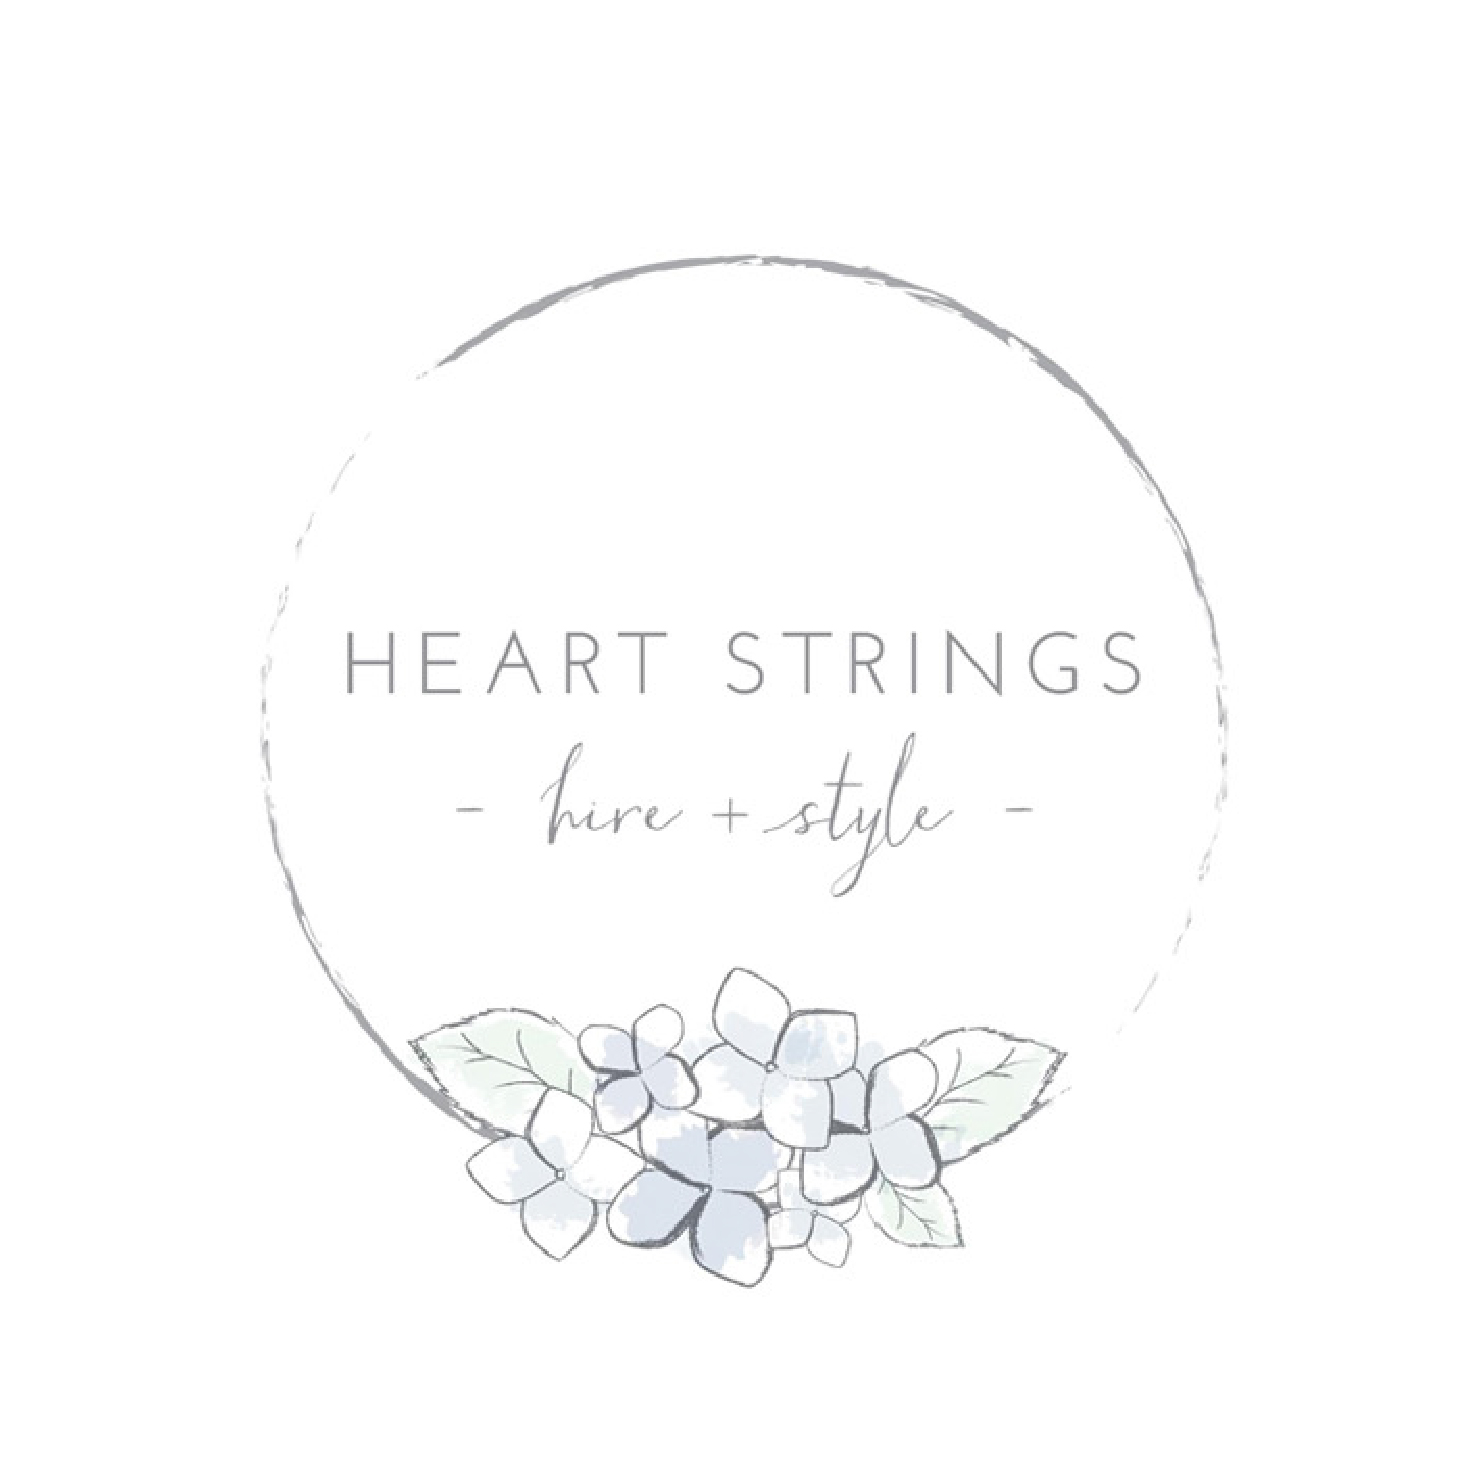 HEART STRINGS HIRE + STYLE   Heart strings are a husband and wife team, two of the nicest and genuine people I know.Brent is a perfectionist and always sets up my weddings perfectly.Never rushes anything.Their products are beautifully kept and pricing is fantastic.Nothing is ever too hard for Sarah.Even when I am emailing her late at night.When things have been altered last minute with setups, nothing is an issue to change/shift.When I come to them with a new piece that I would love to have made they are always happy to help.